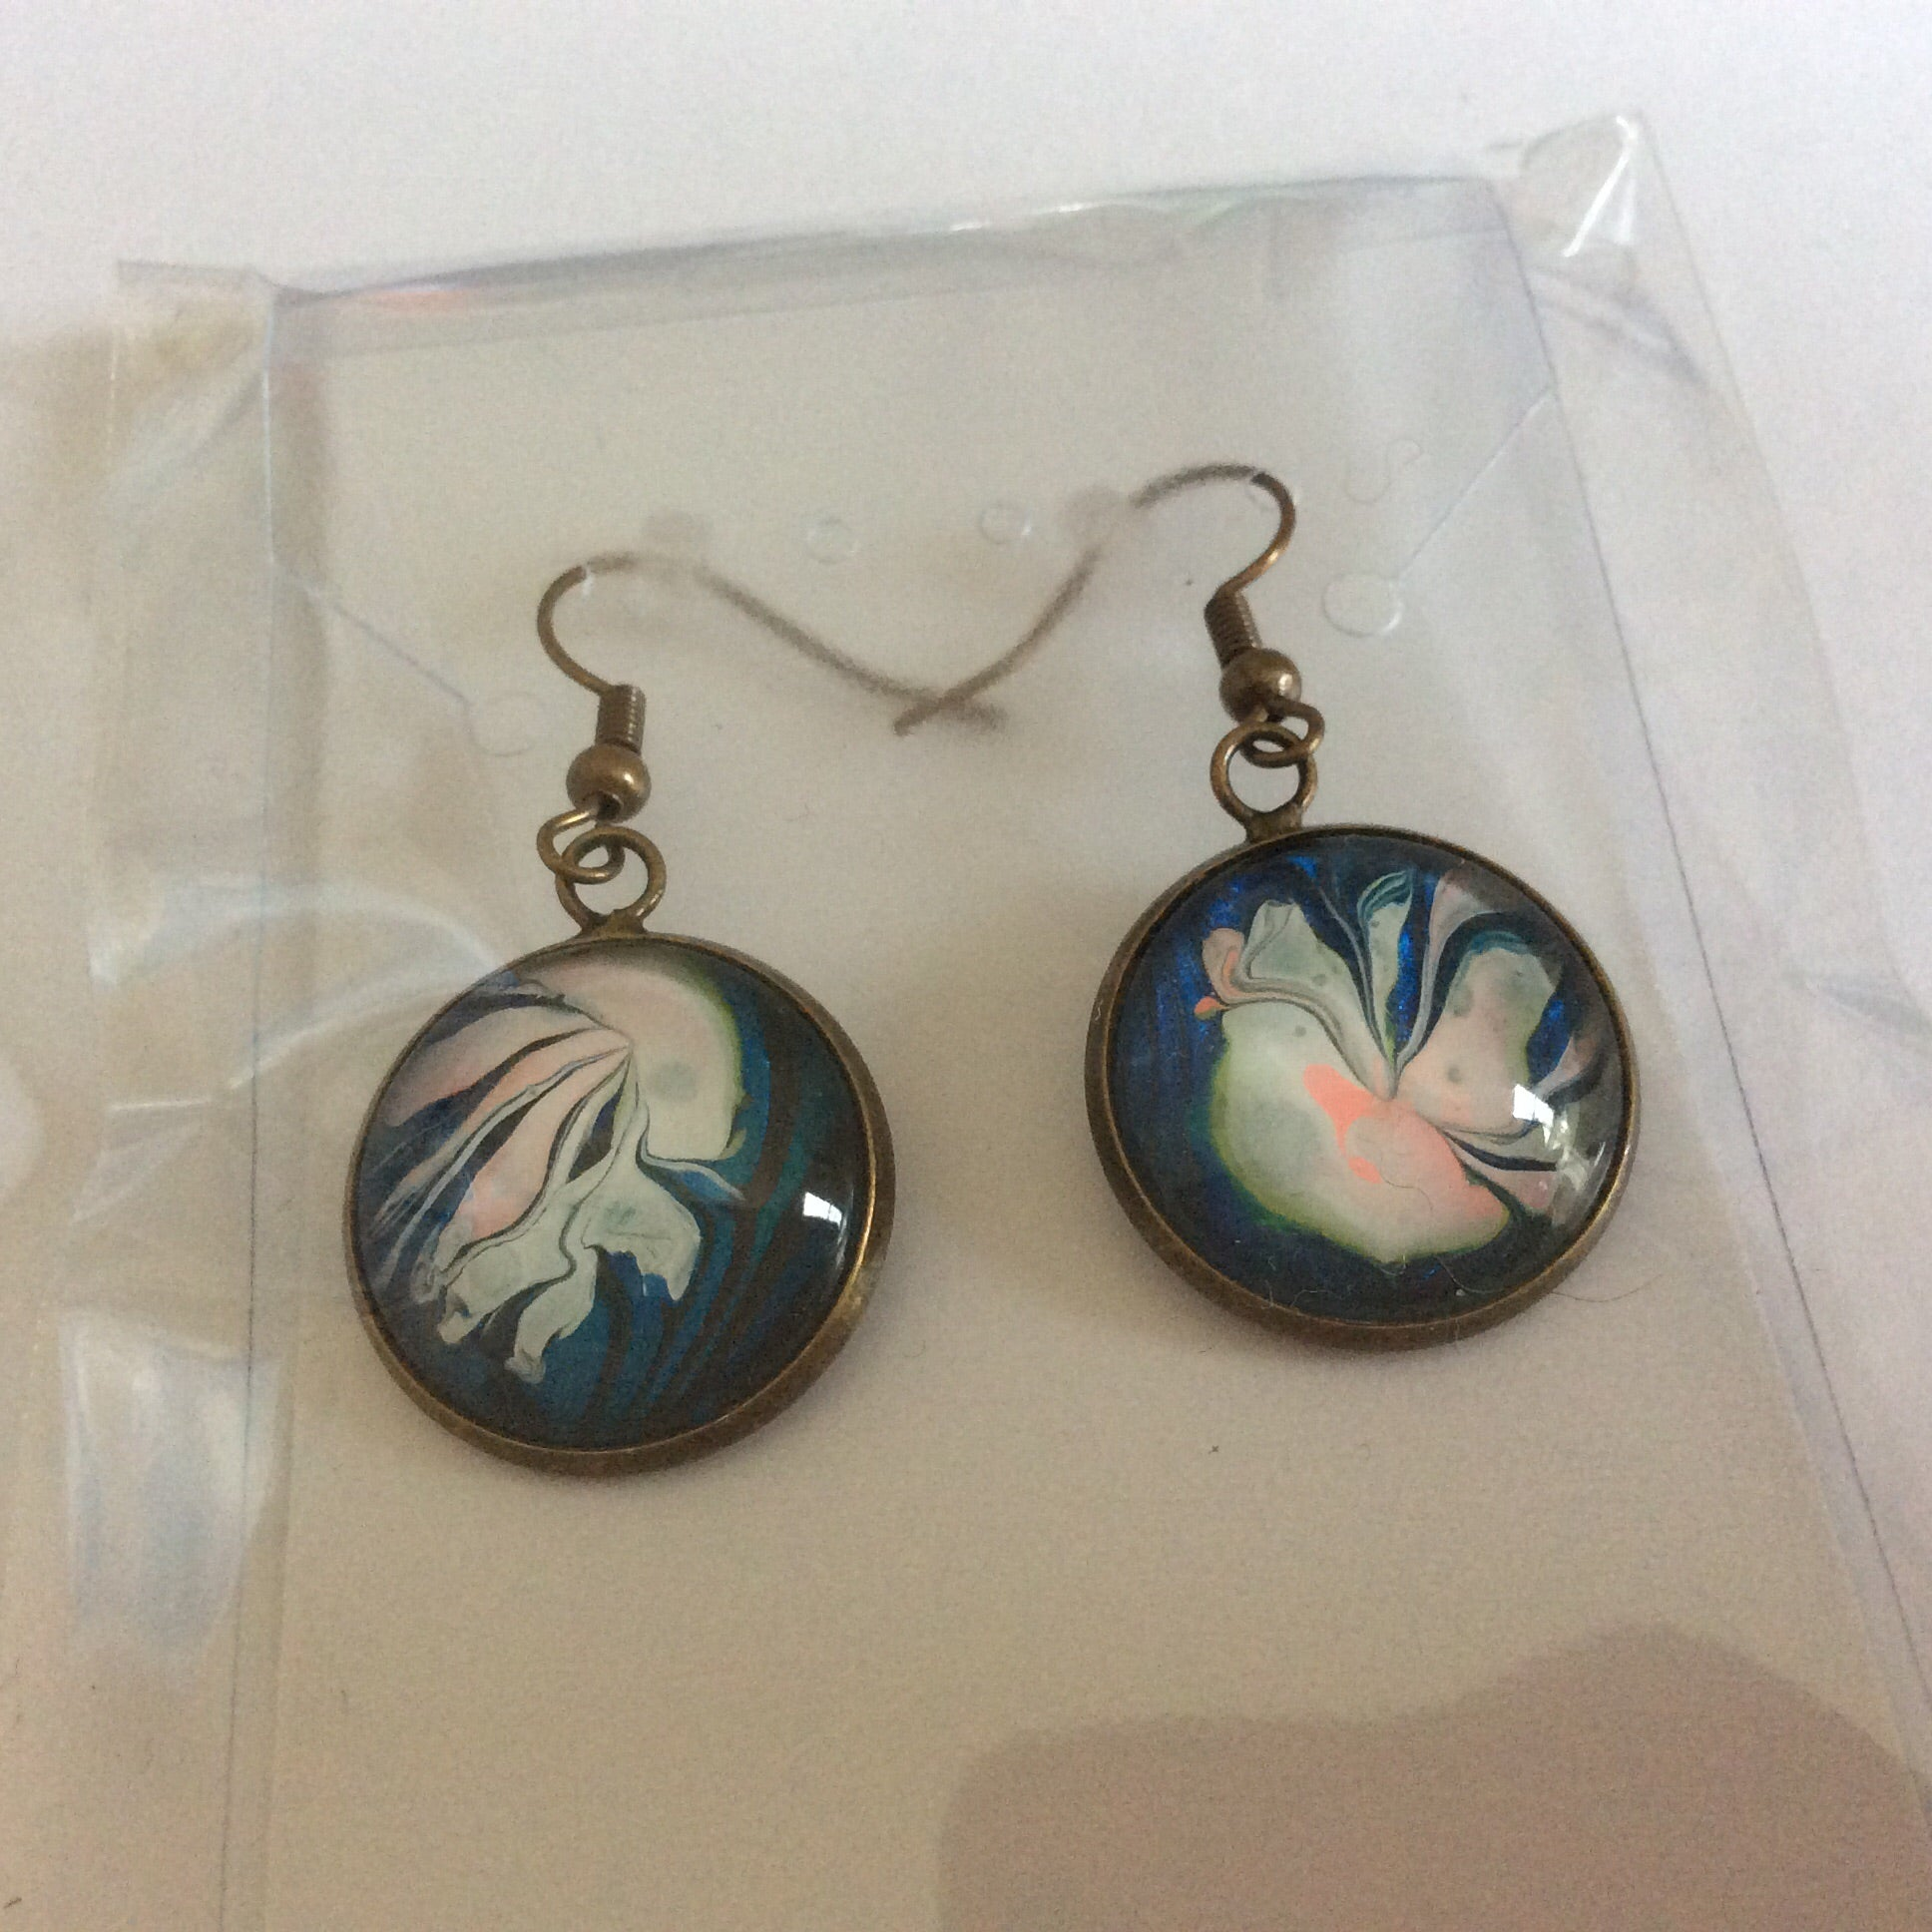 Earrings, Whimsical Jellyfish